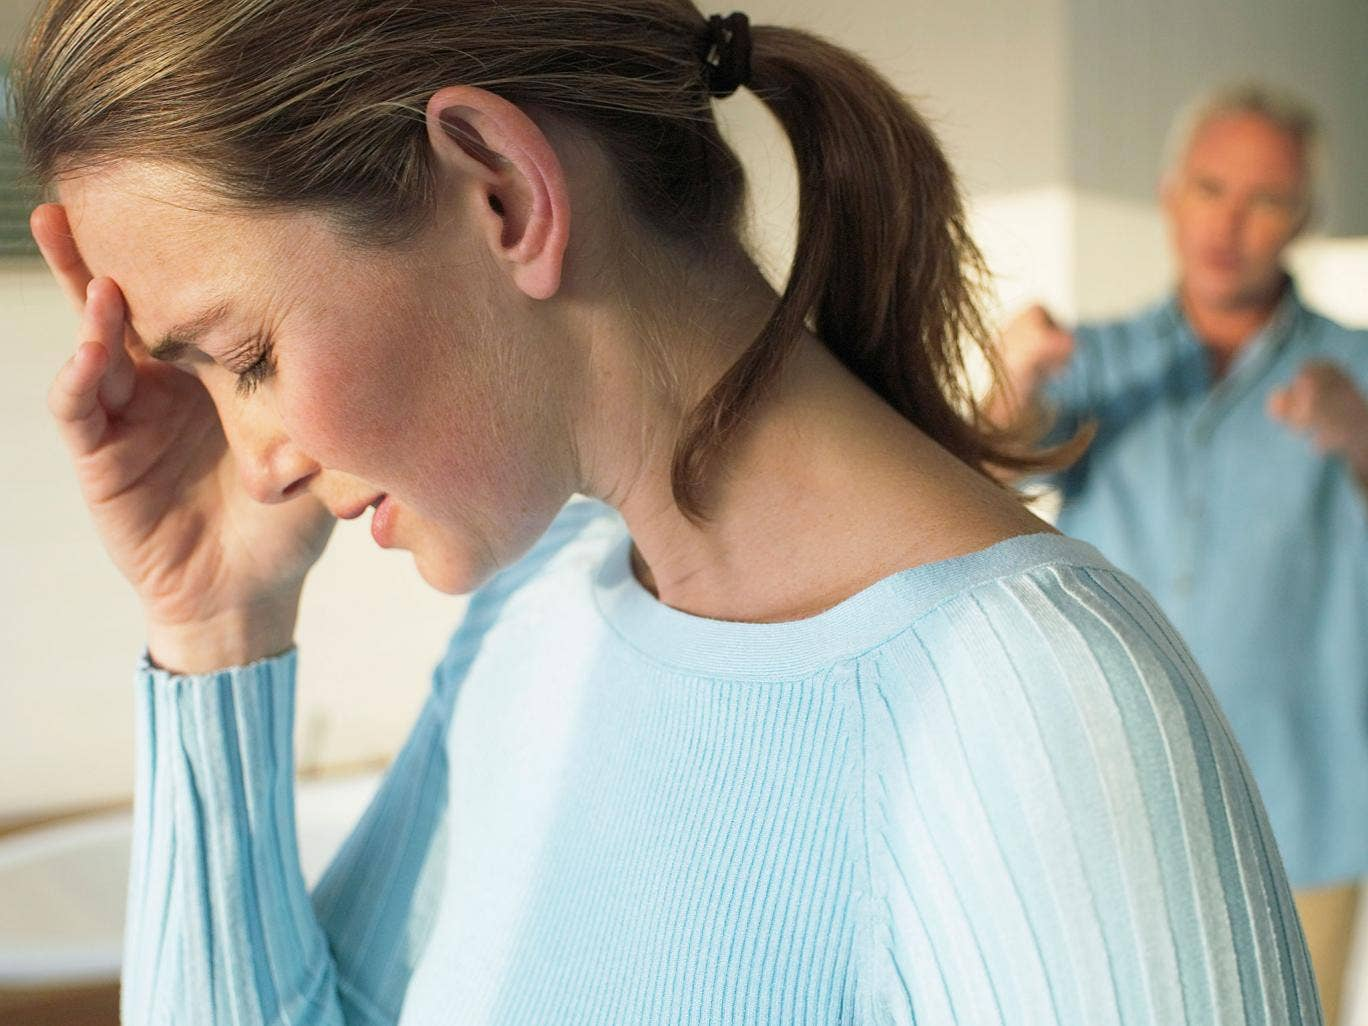 Many cancer sufferers face considerable relationship problems